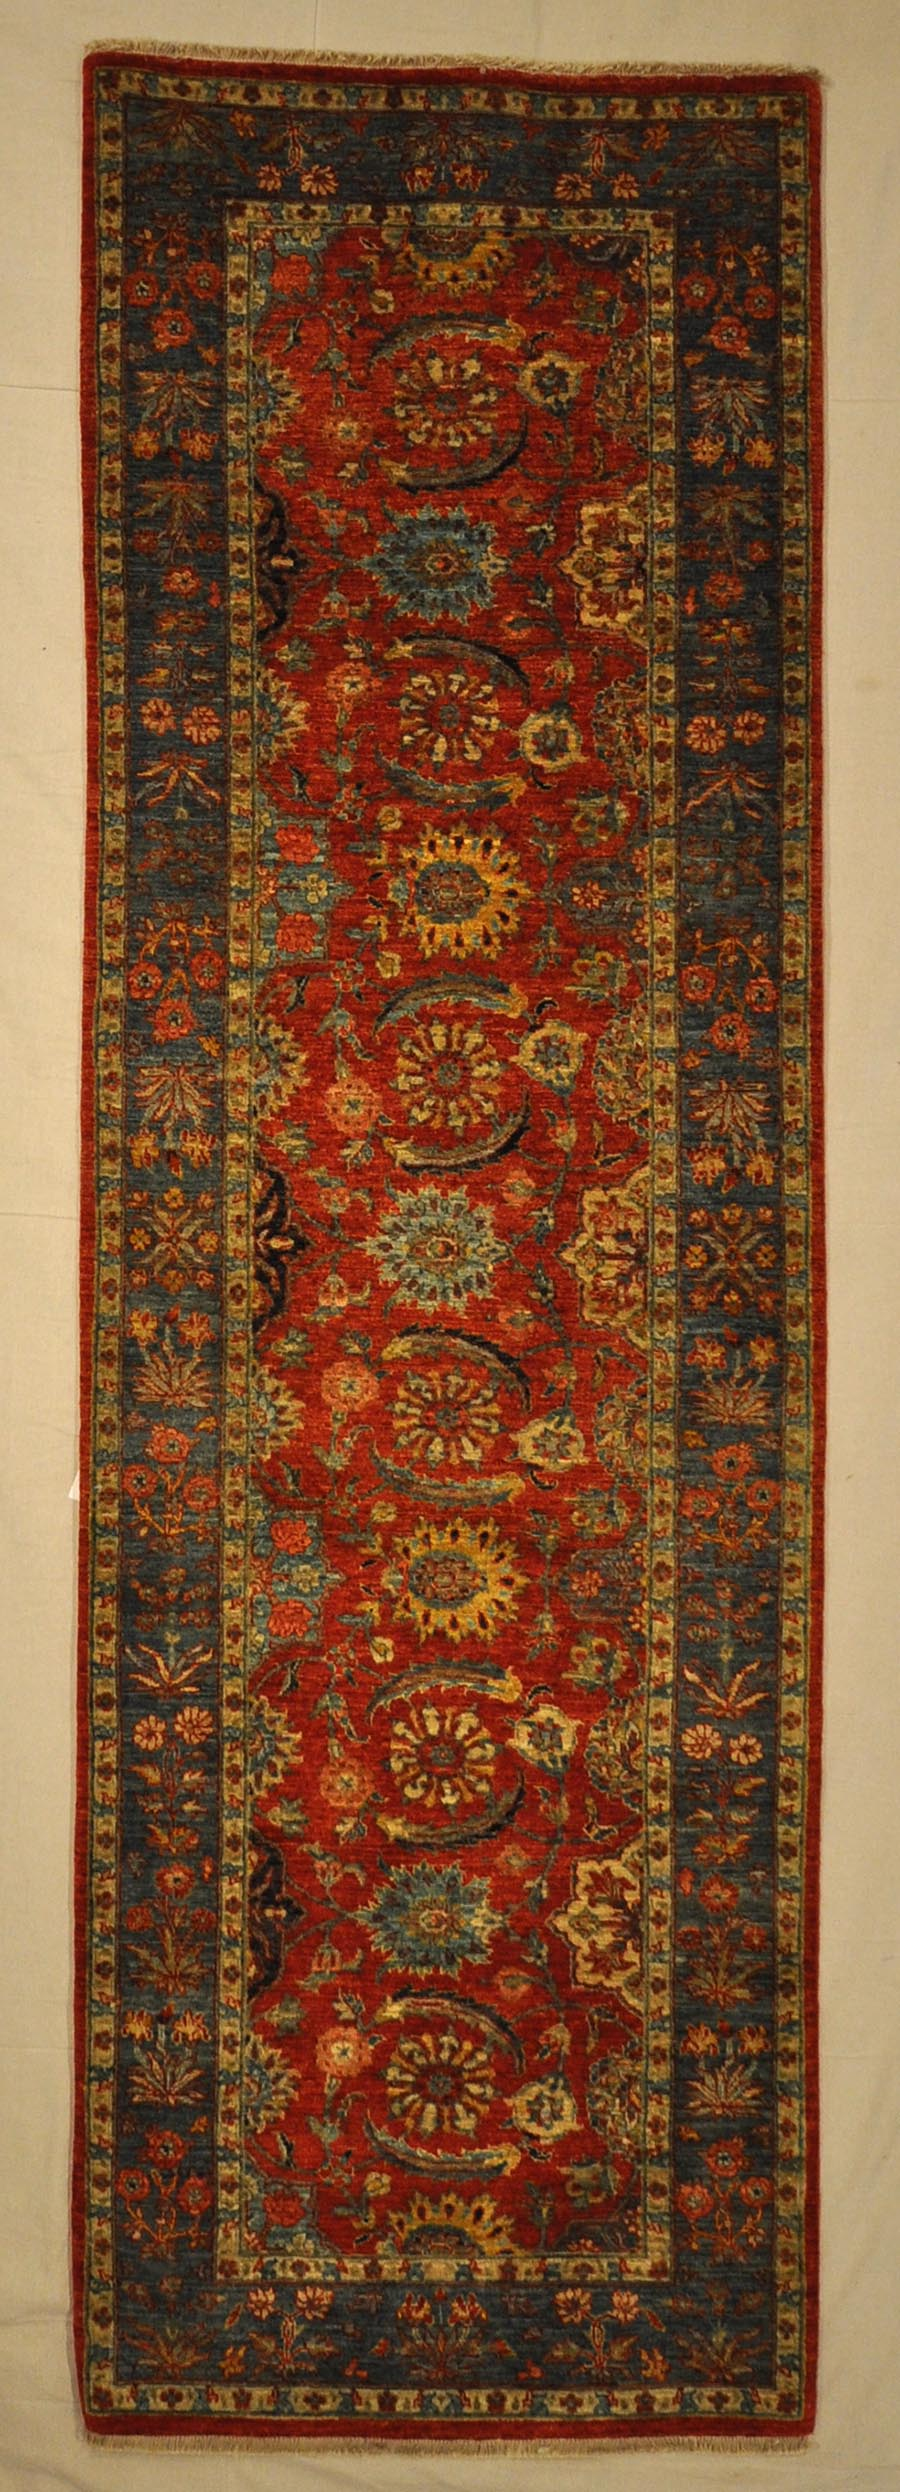 Fine Mughal Runner | Rugs and More | Santa Barbara Design Center 44259